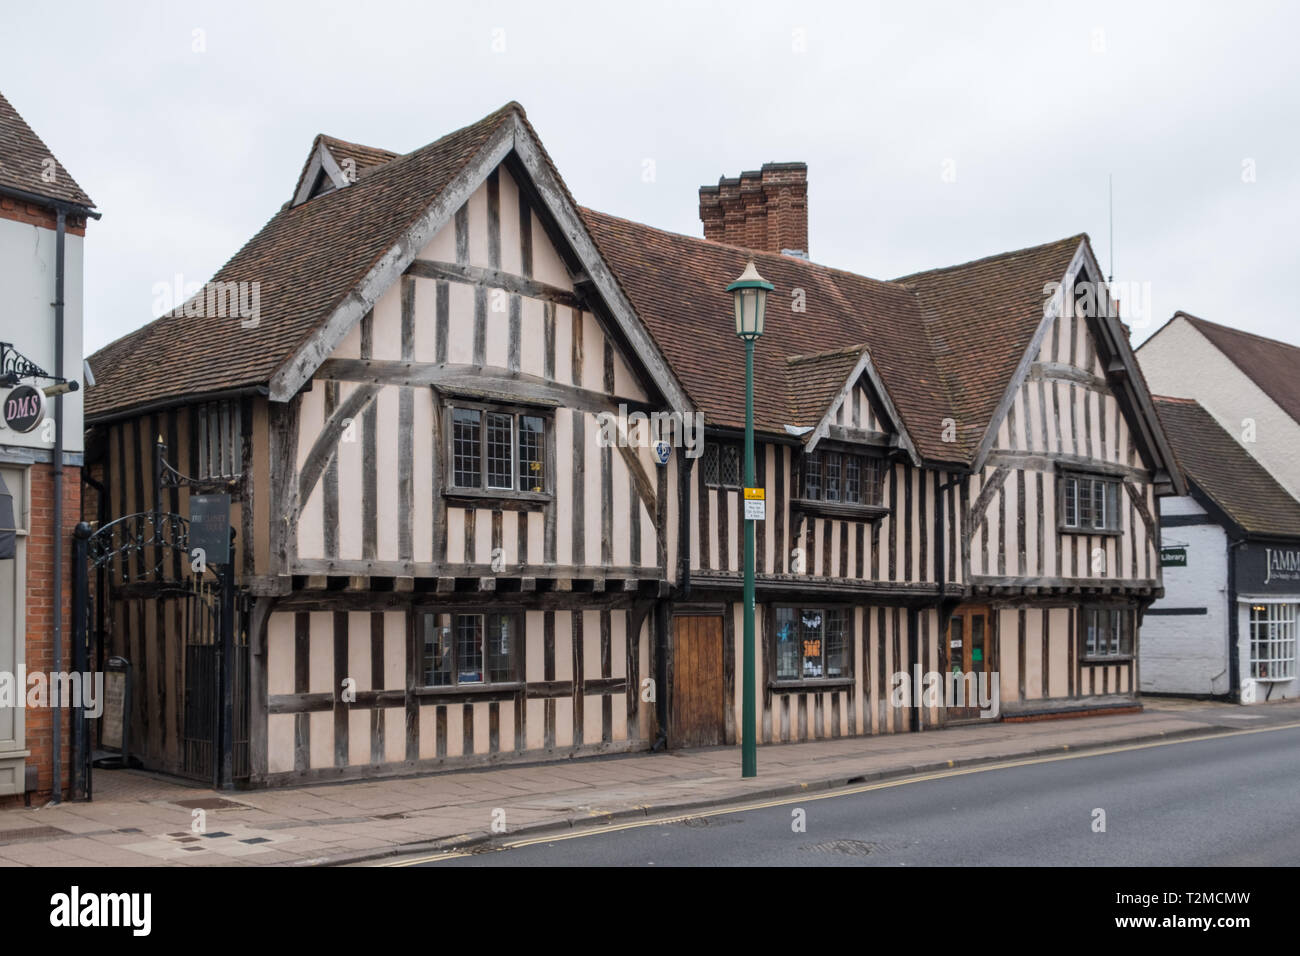 Chester House is a Tudor building which houses Knowle Public Library in the village of Knowle near Solihull, West Midlands - Stock Image